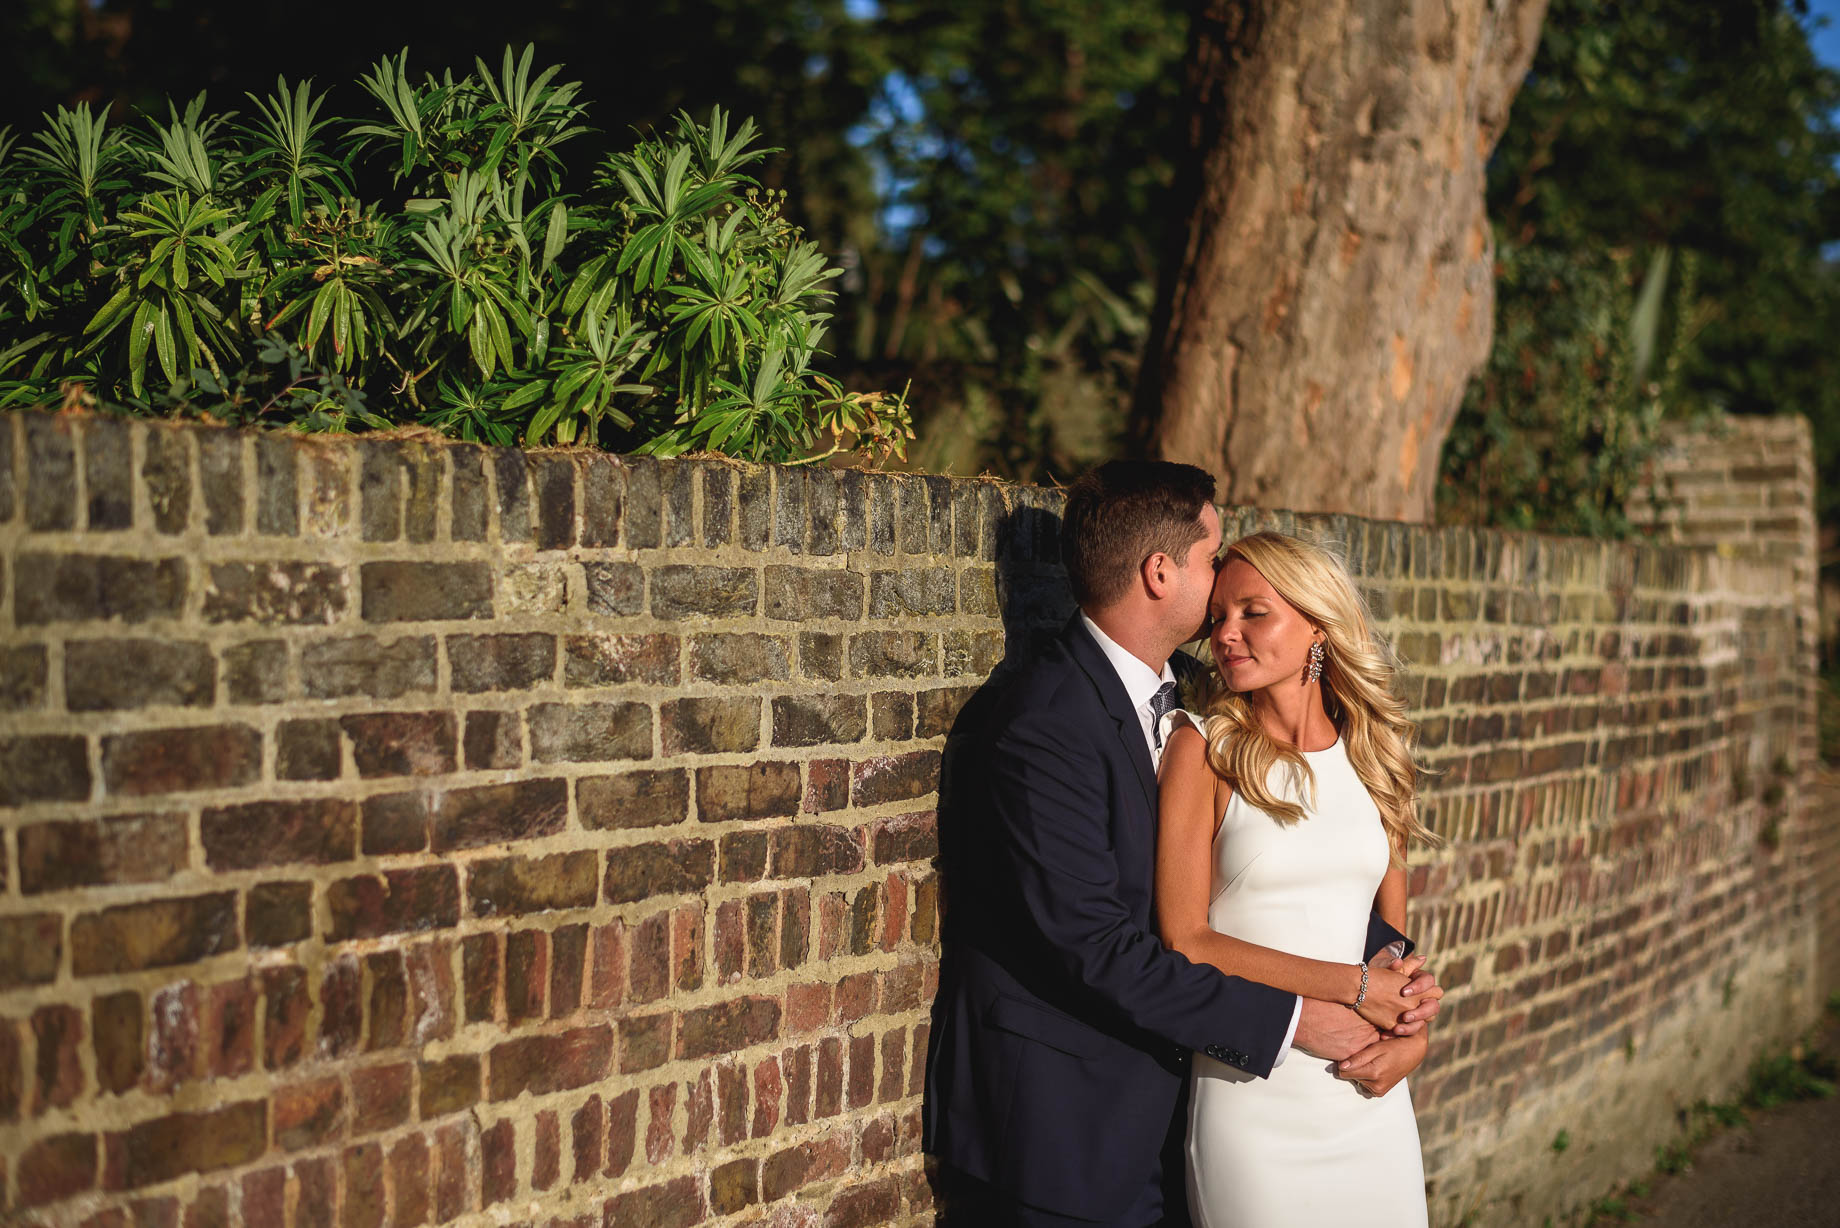 The Bingham wedding photography - Hannah + Anthony